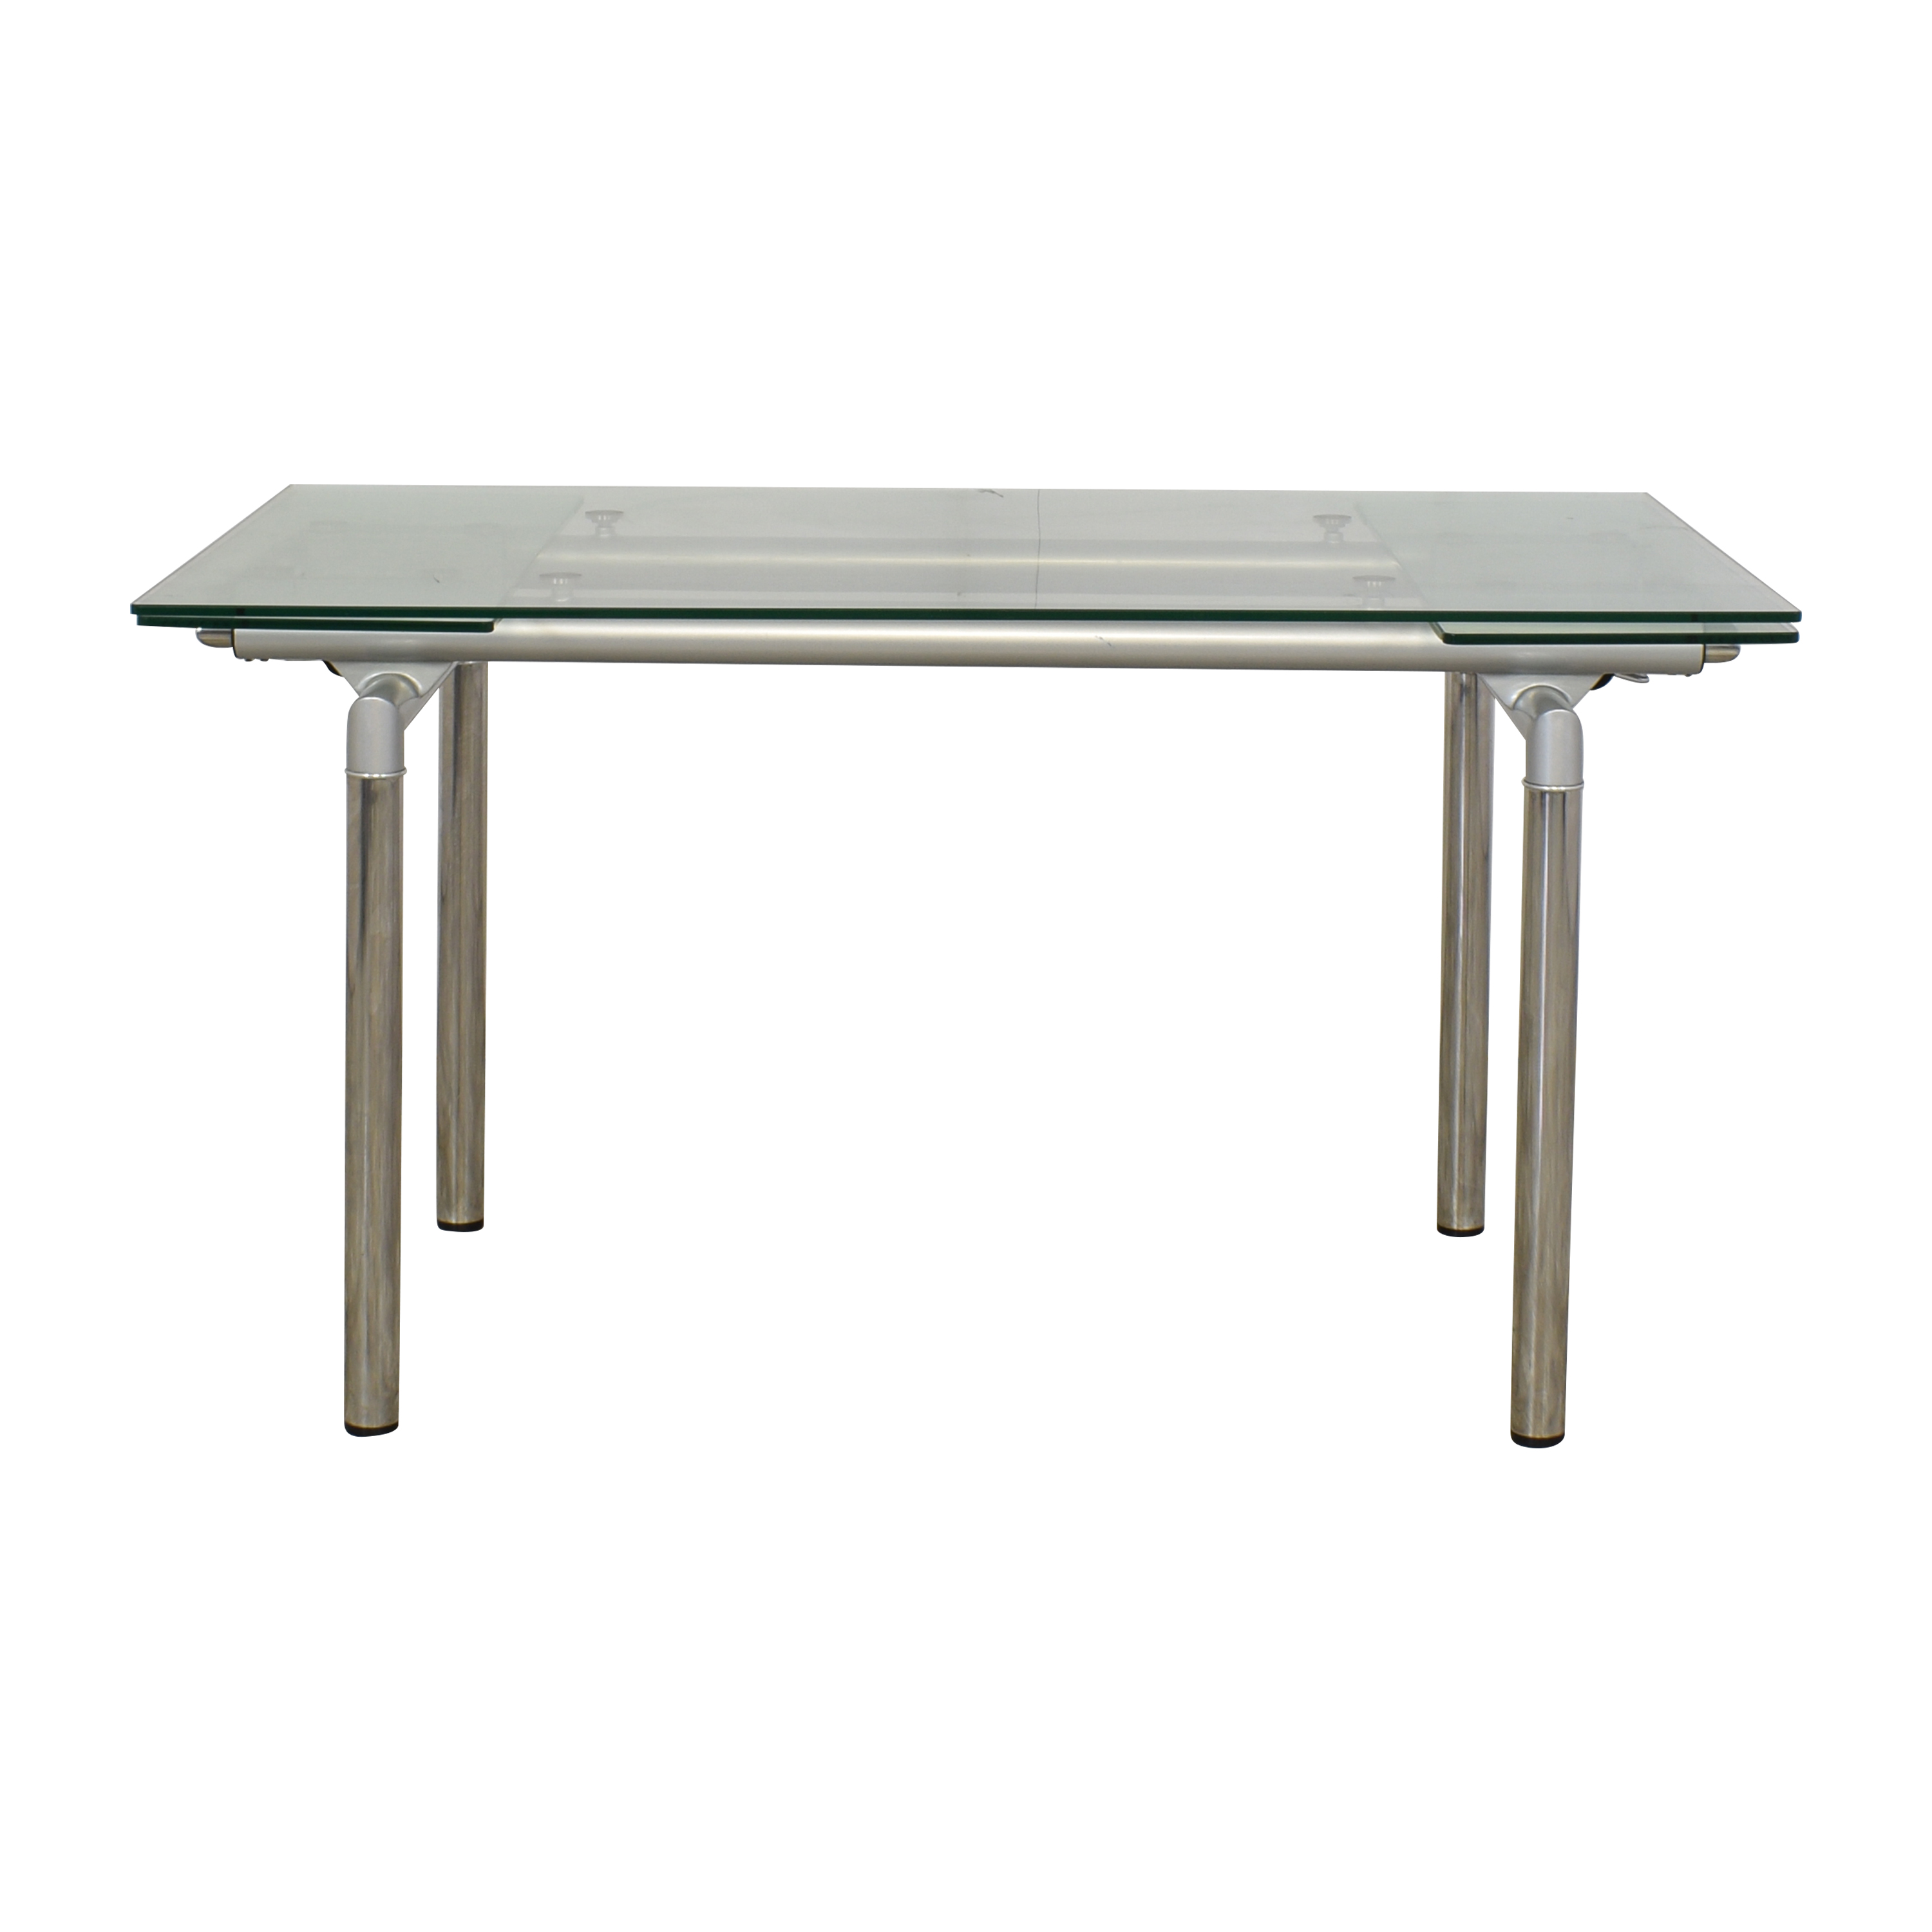 Modern Style Extendable Dining Table for sale